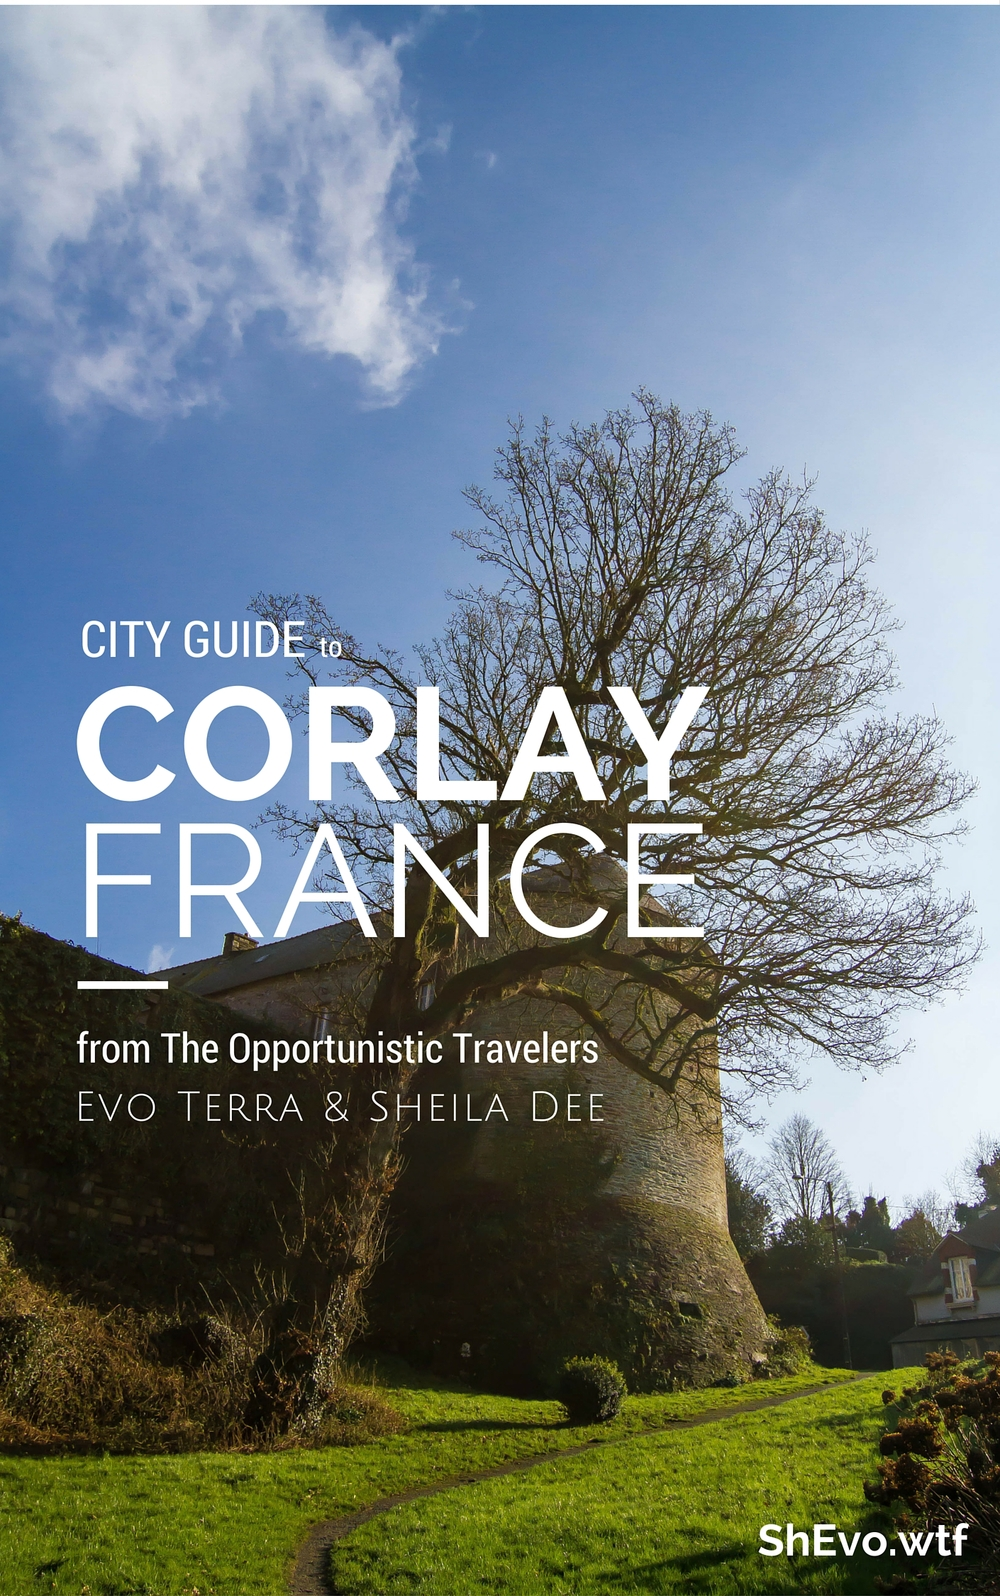 Corlay-France-CITY-GUIDE.jpg